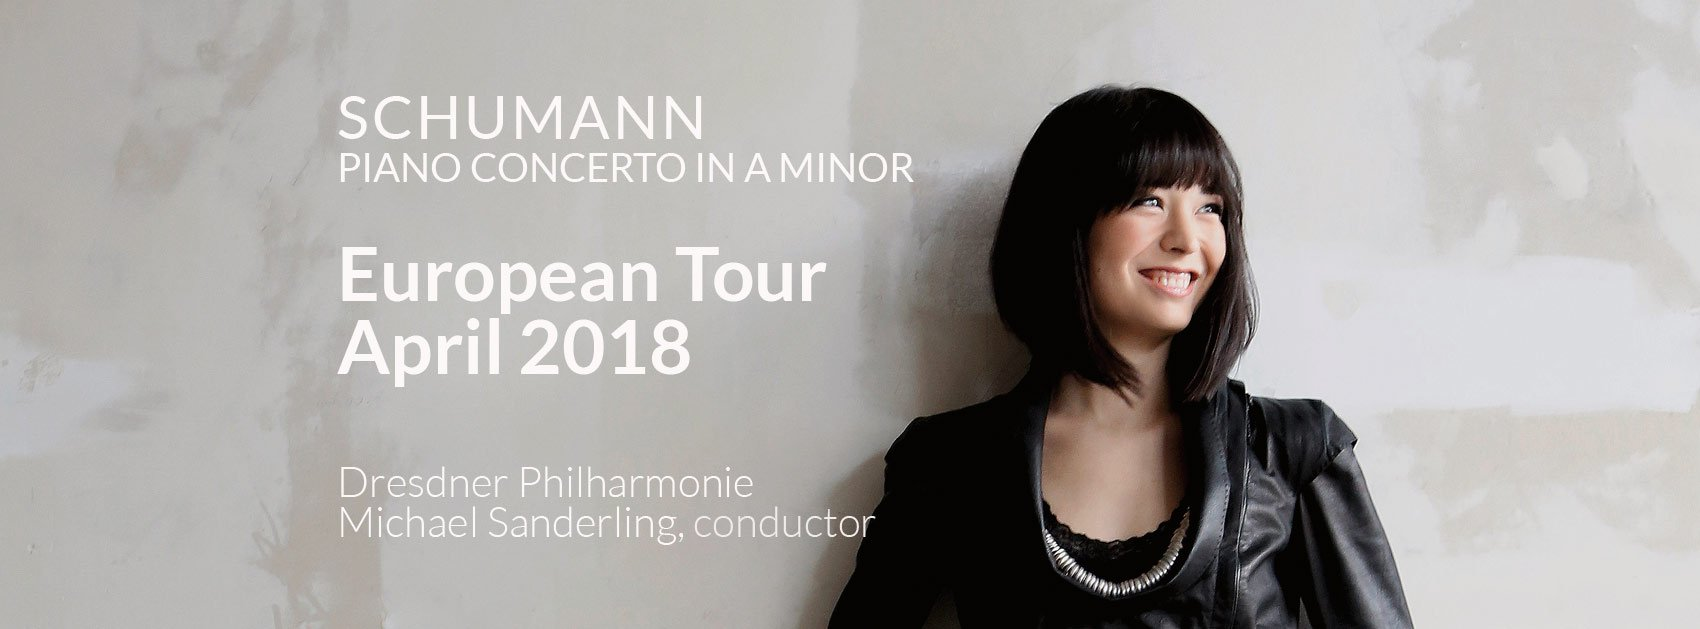 Reloaded twaddle – RT @AliceSaraOtt: European tour with Schumann's Piano Concerto in A minor, Micha...